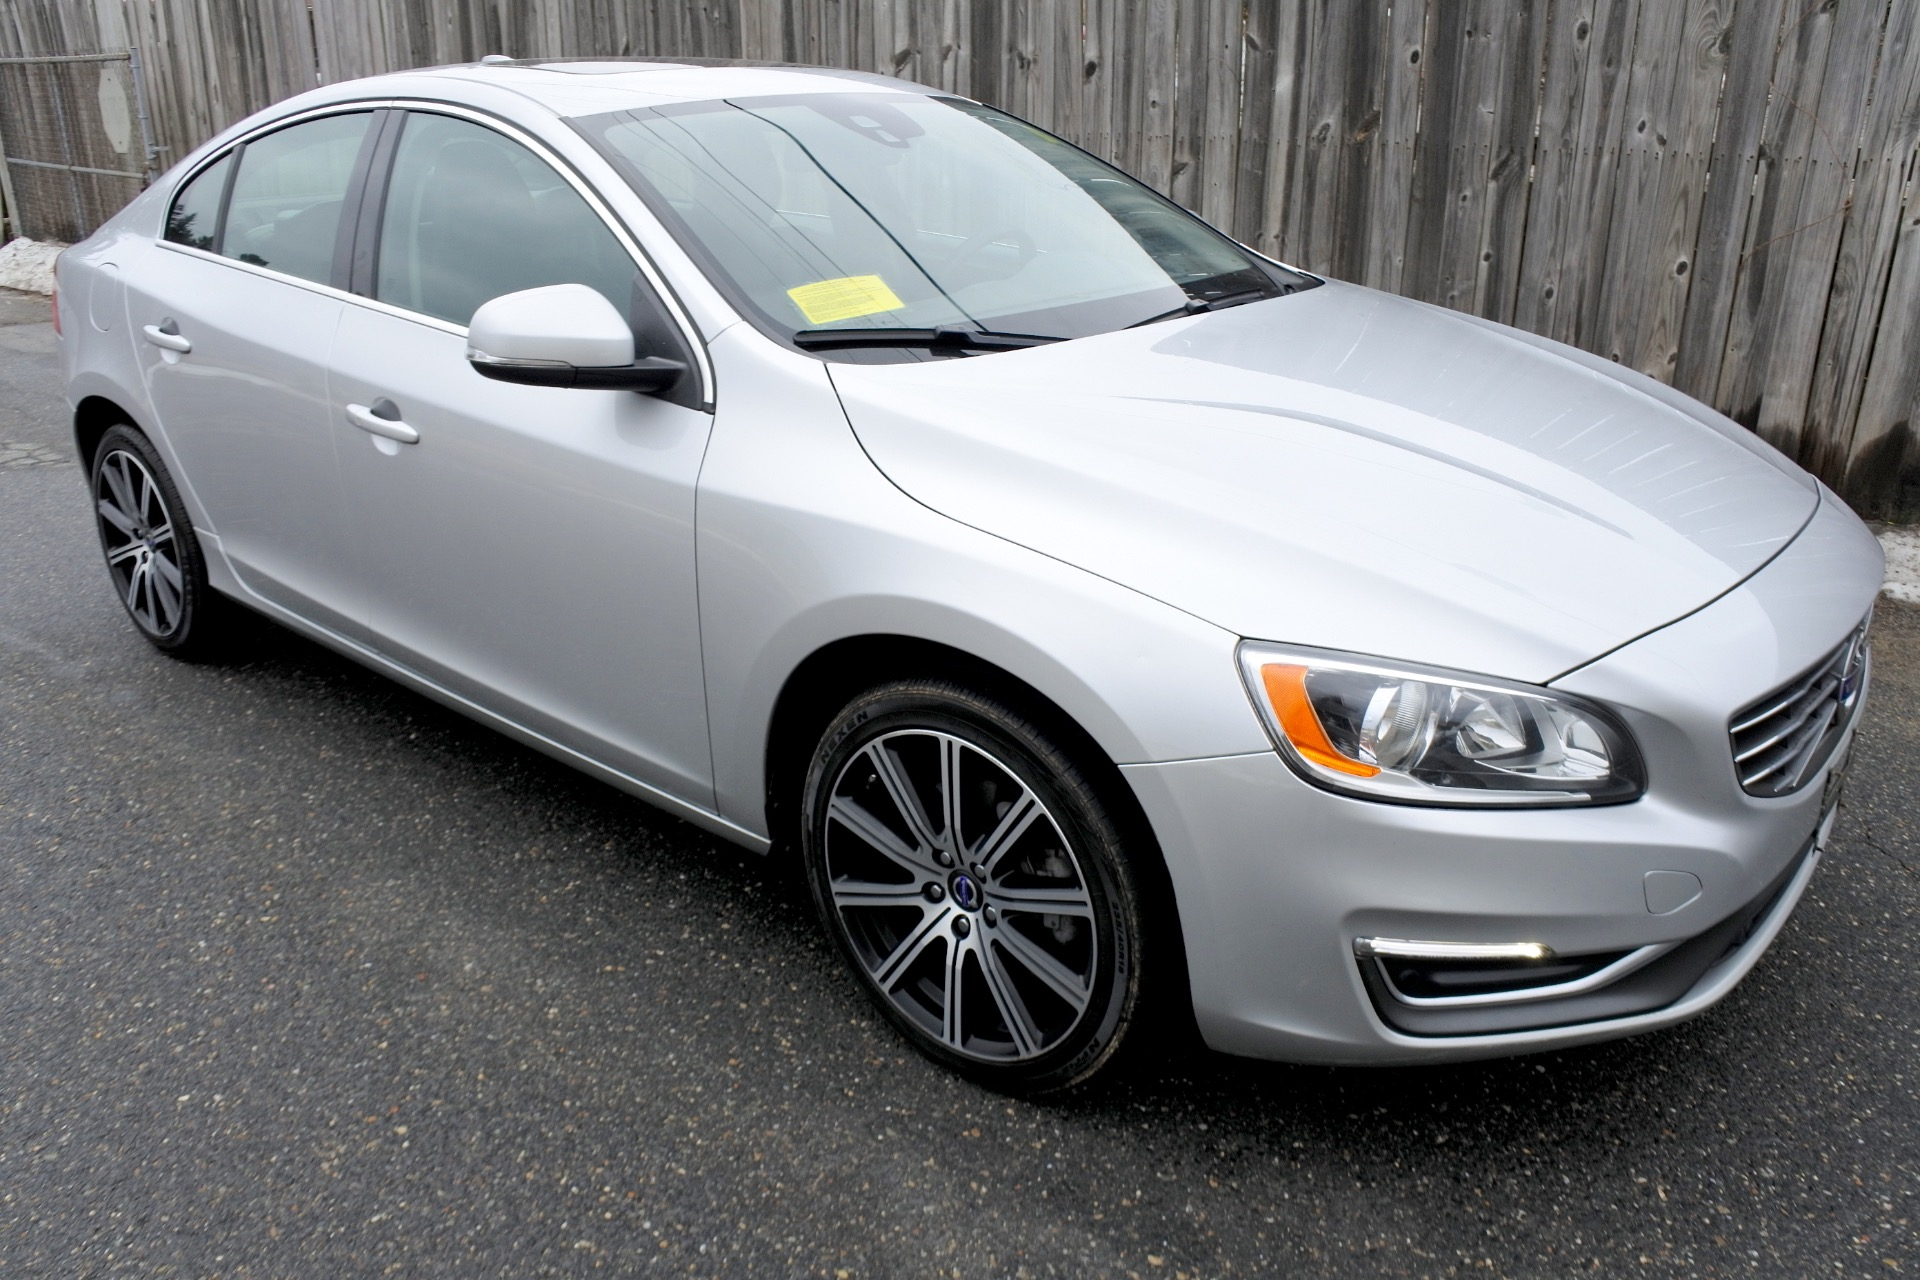 Used 2014 Volvo S60 4dr Sdn T5 Premier AWD Used 2014 Volvo S60 4dr Sdn T5 Premier AWD for sale  at Metro West Motorcars LLC in Shrewsbury MA 6